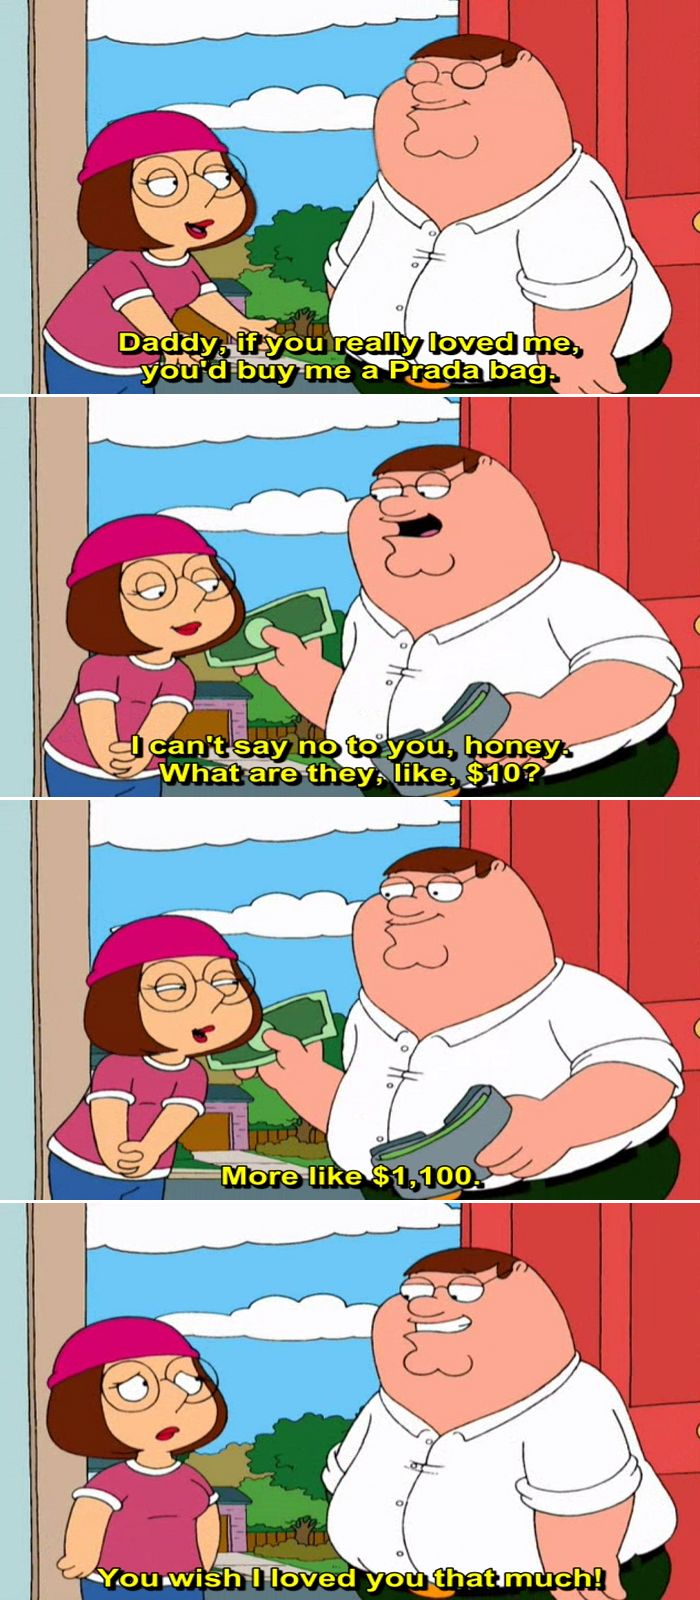 Meg Griffin: Daddy, if you really loved me, you'd buy me a Prada bag. Peter Griffin: I can't say no to you, honey. What are they like, $10? Meg Griffin: More like $1,100. Peter Griffin: You wish I loved you that much!